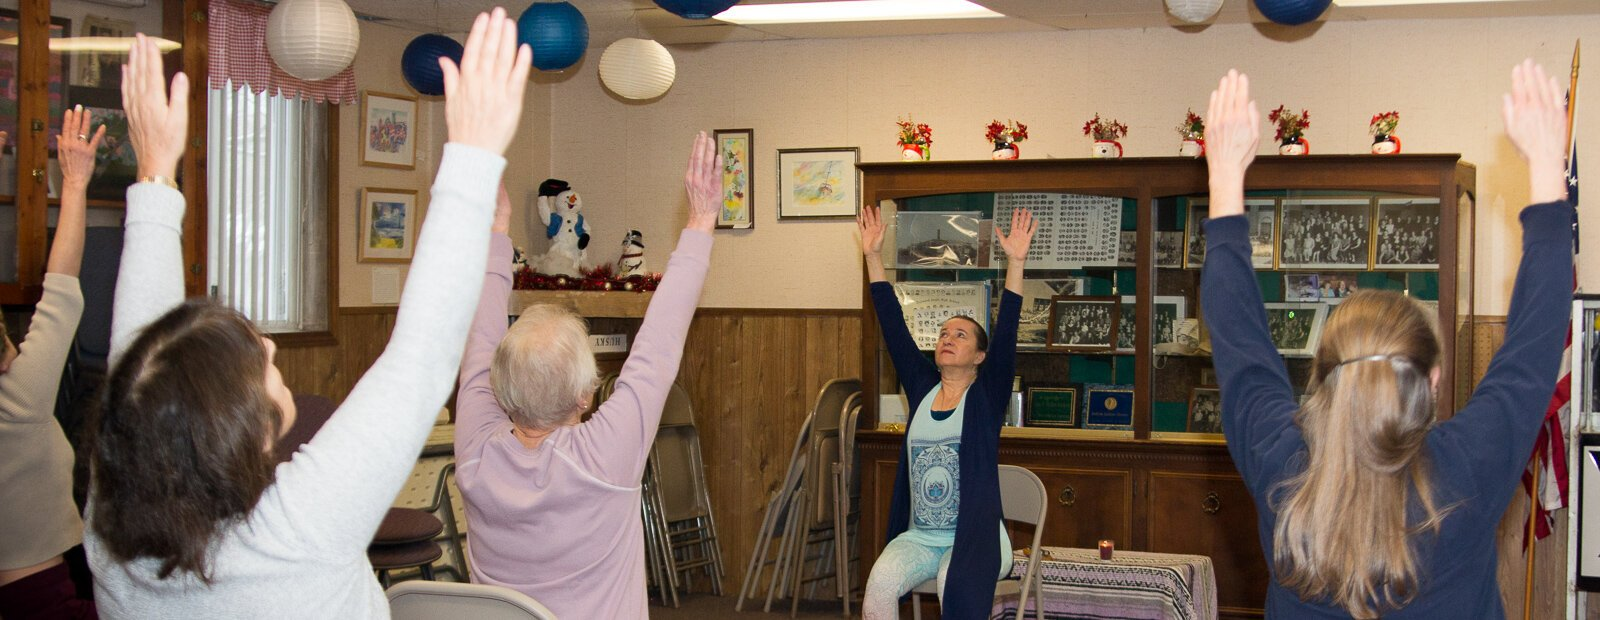 Yoga at the Oakwood Community Center